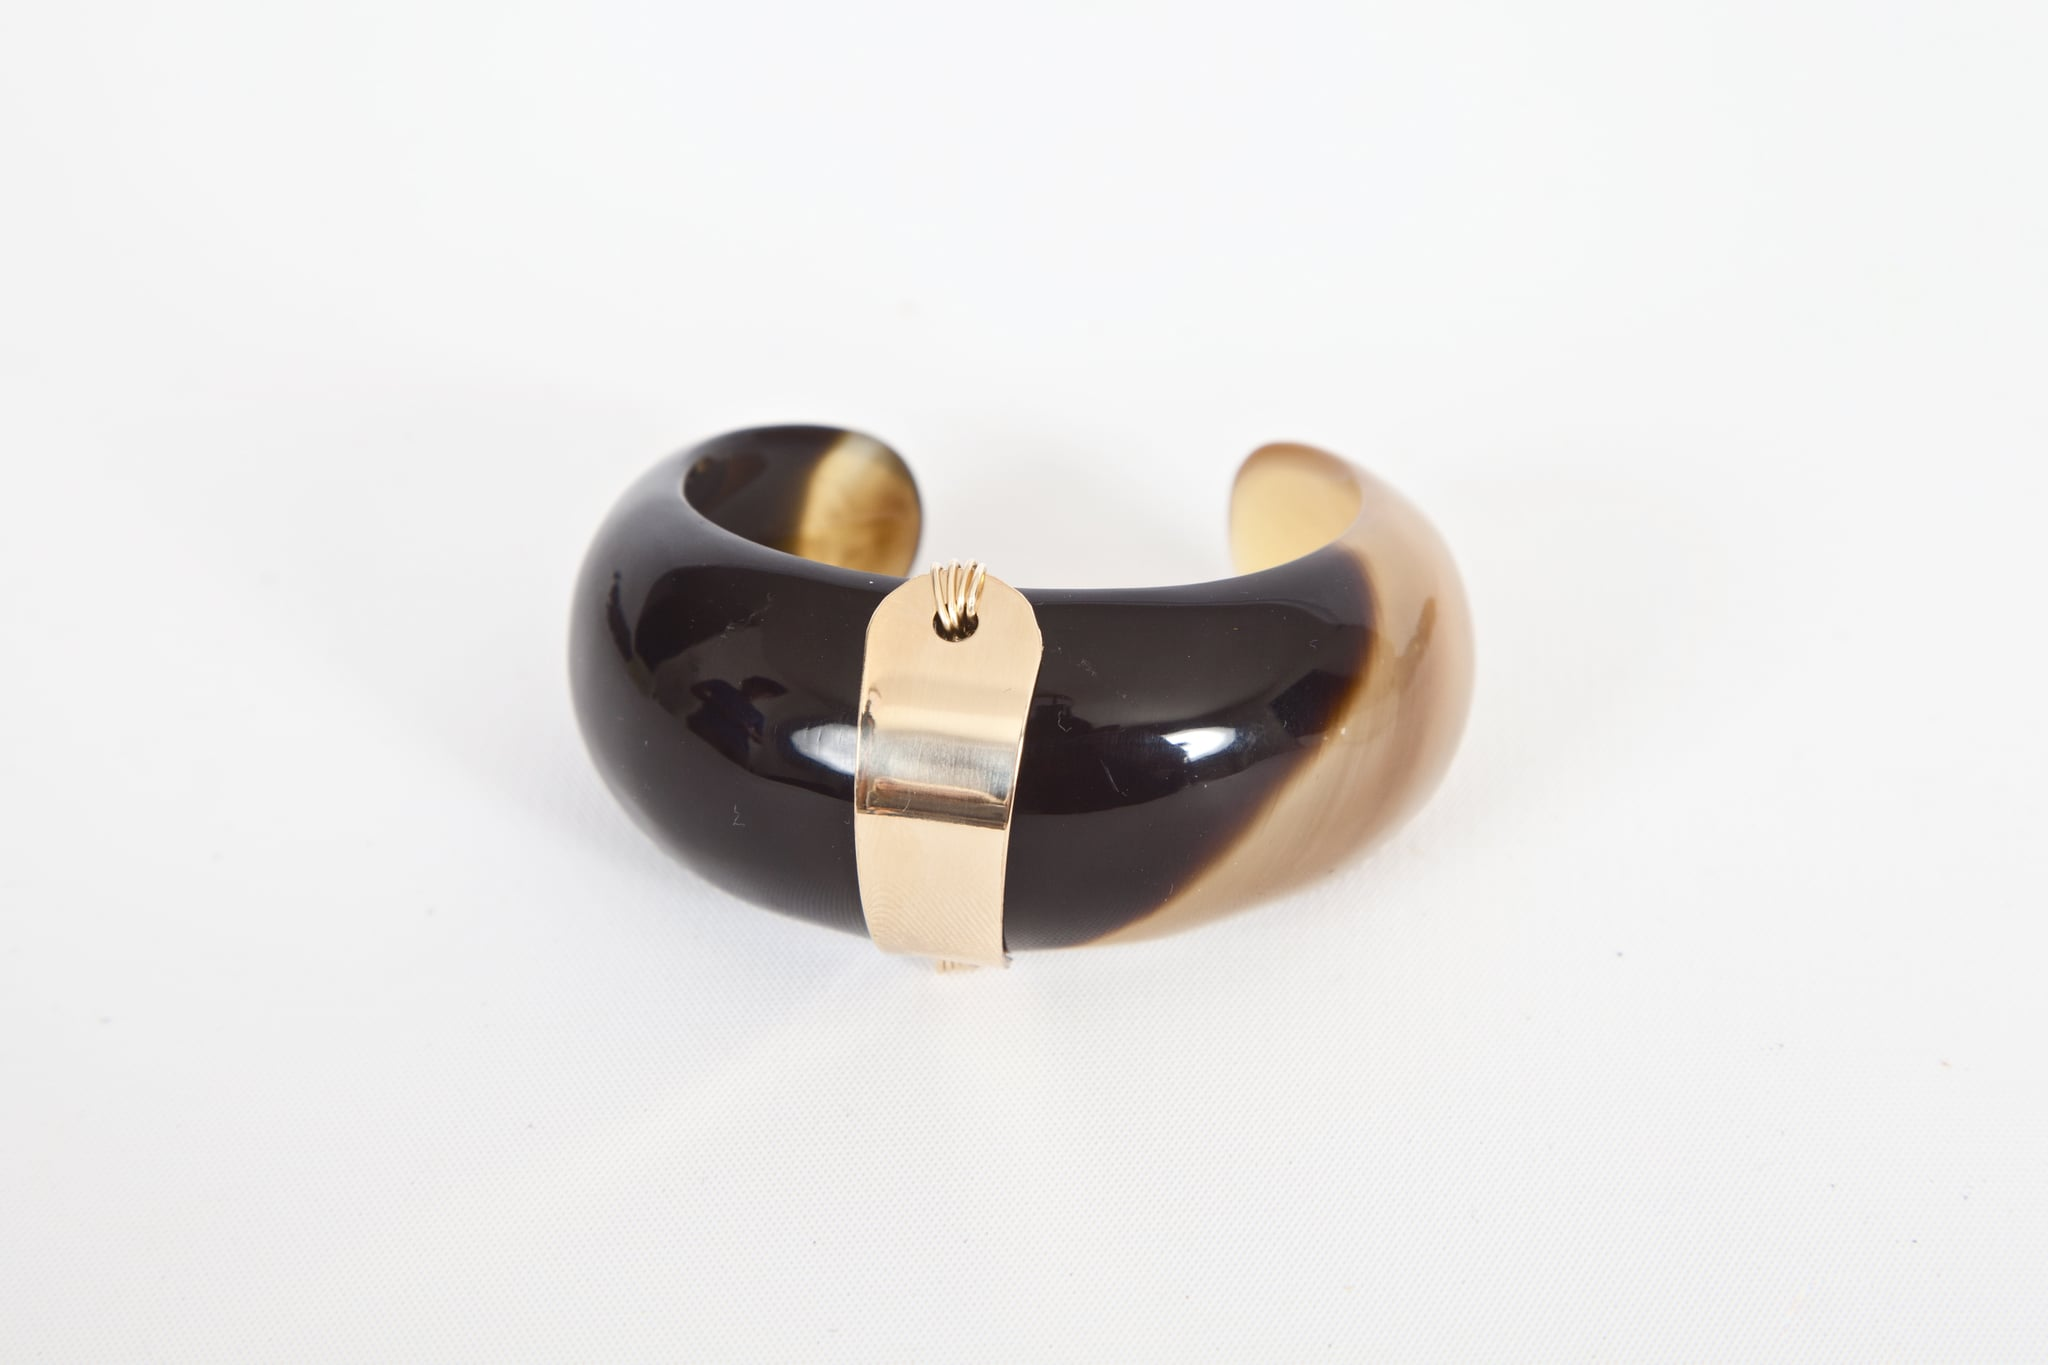 Taylor and Tessier Black Bull Cuff